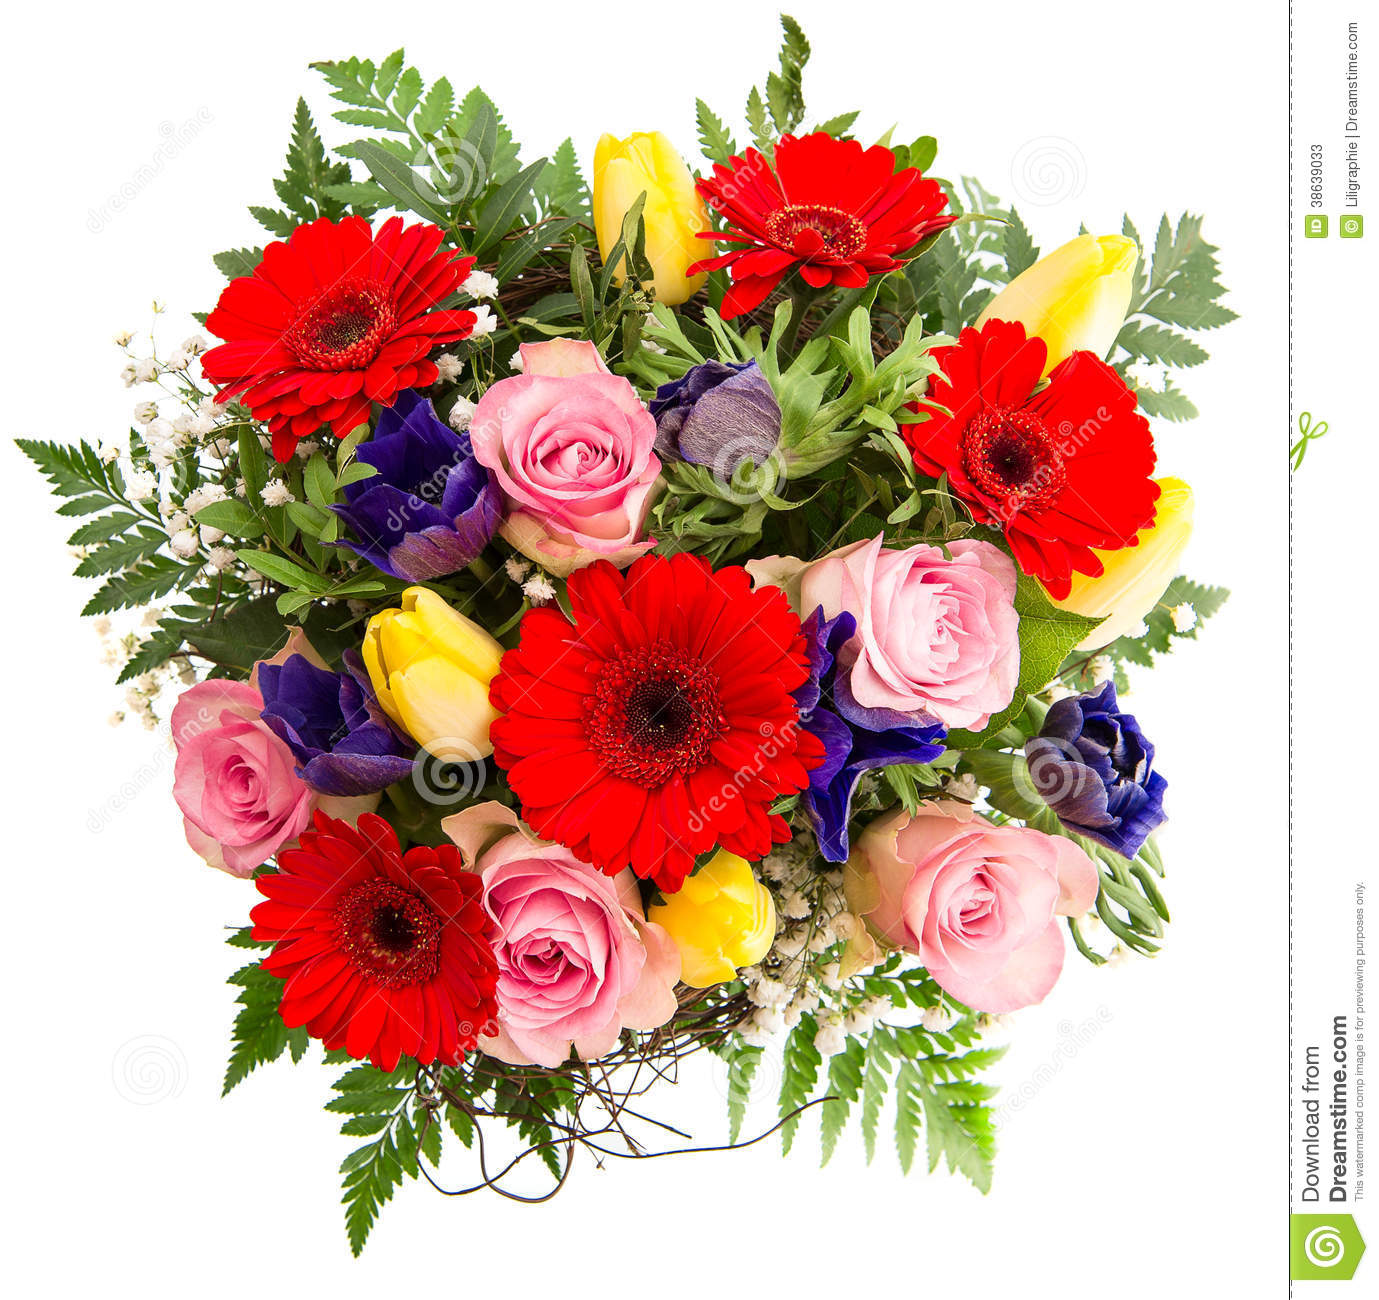 Muted Blue And Floral Red: Fresh Colorful Spring Flowers Bouquet Stock Photos